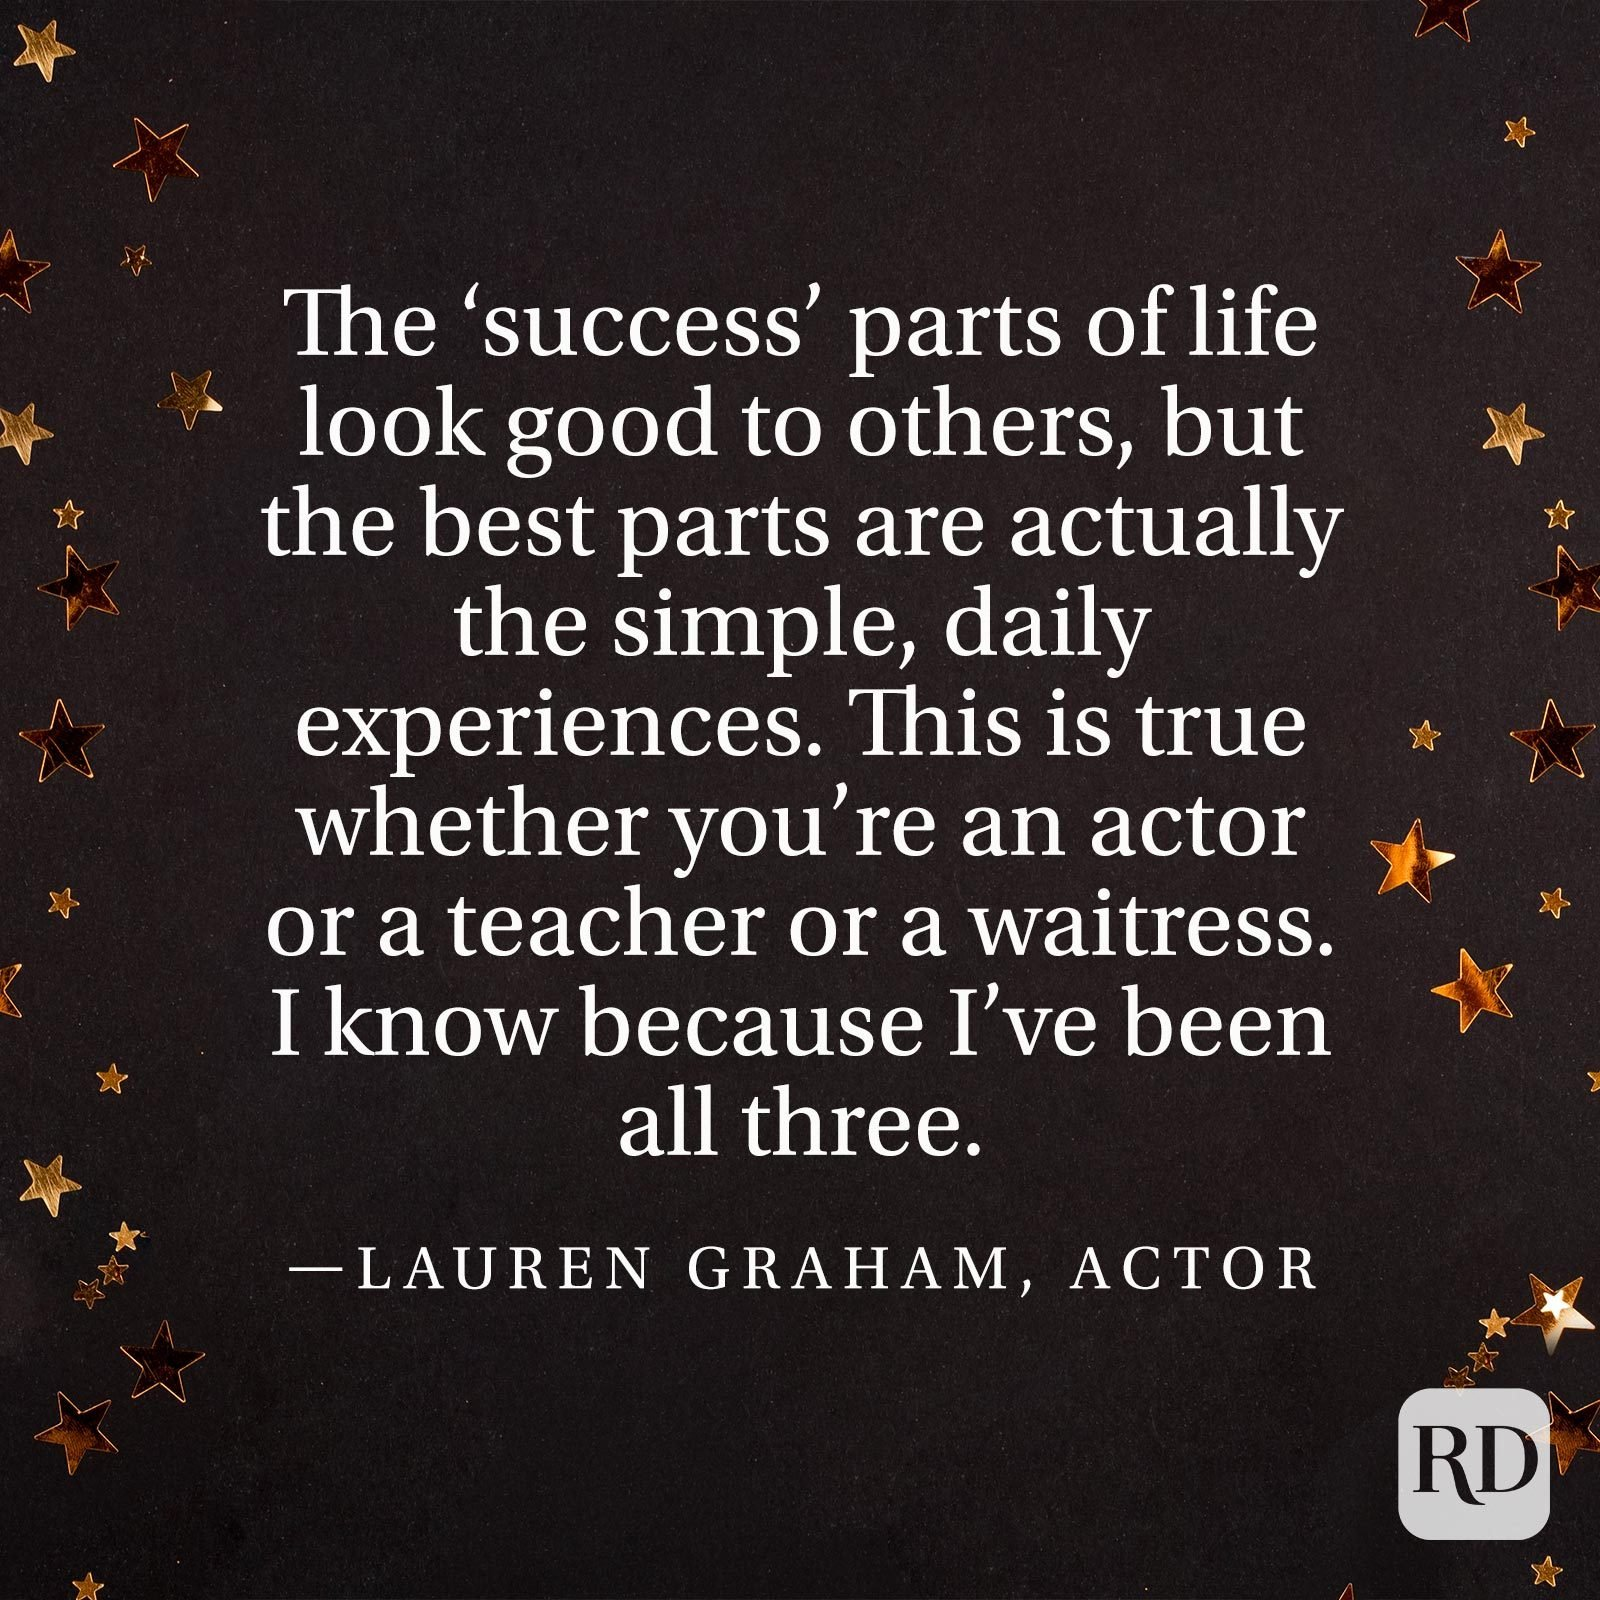 """The 'success' parts of life look good to others, but the best parts are actually the simple, daily experiences. This is true whether you're an actor or a teacher or a waitress. I know because I've been all three."" —Lauren Graham, actor"